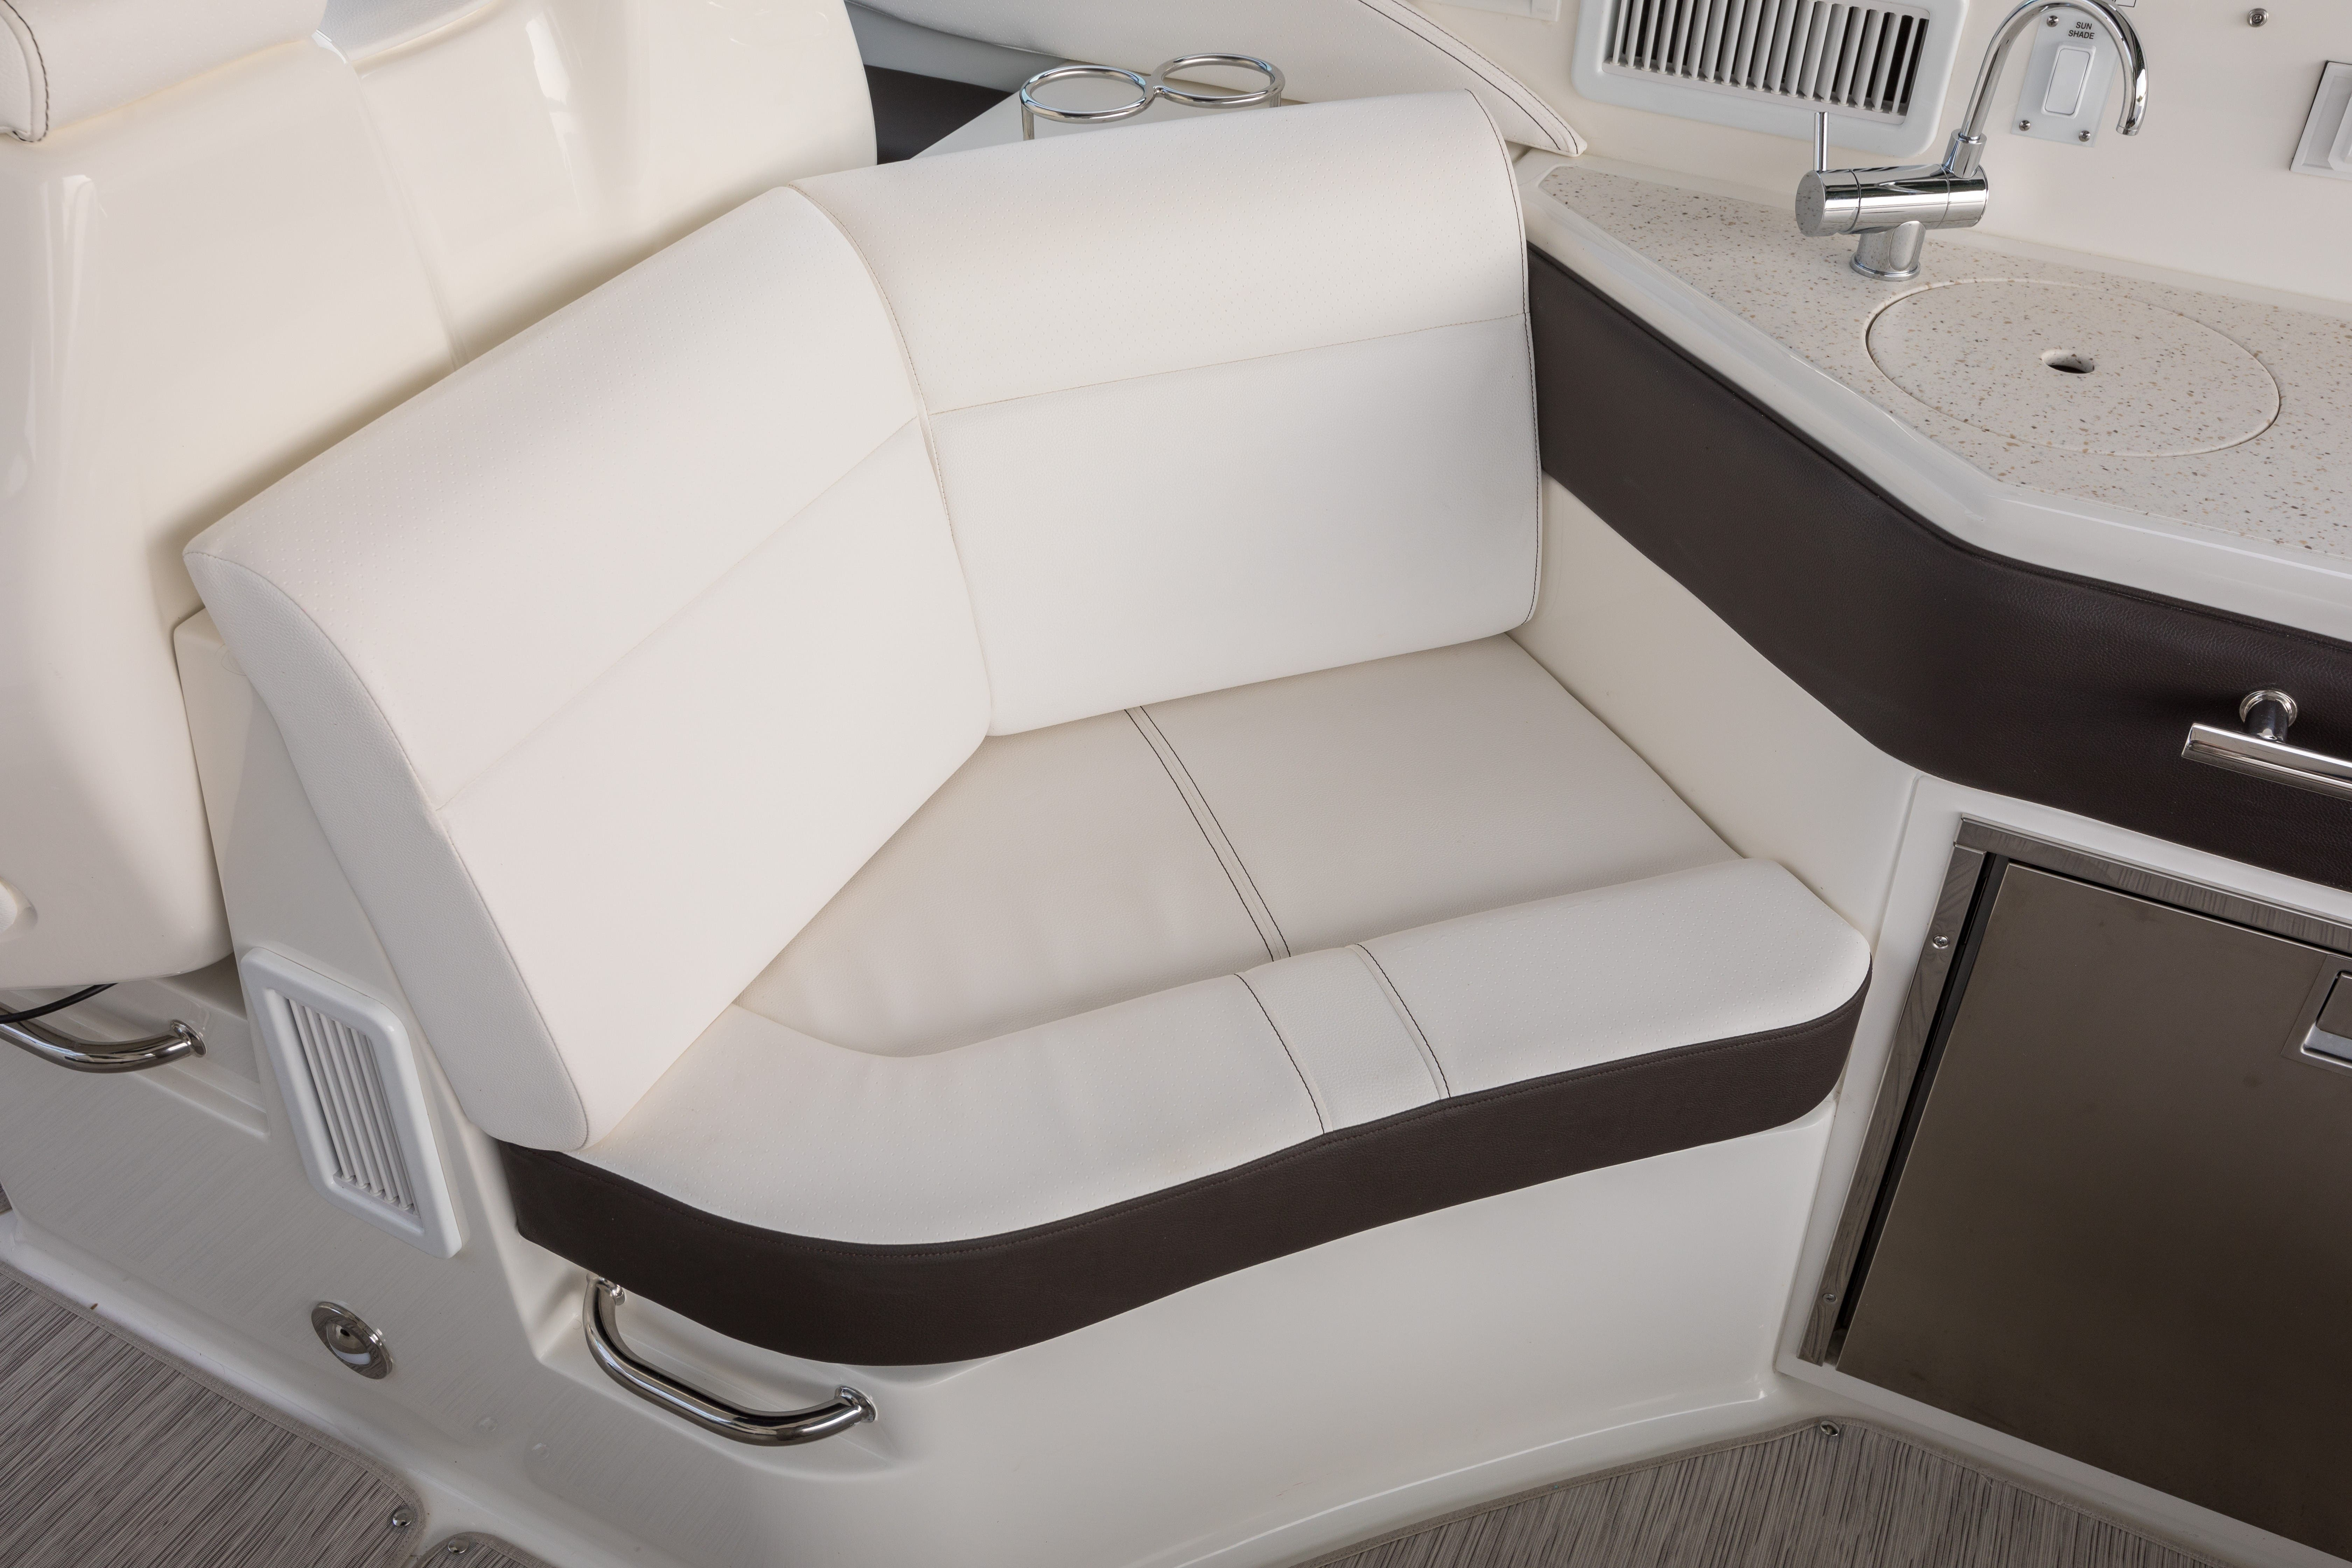 2021 Sea Ray boat for sale, model of the boat is 320 Sundancer & Image # 11 of 24